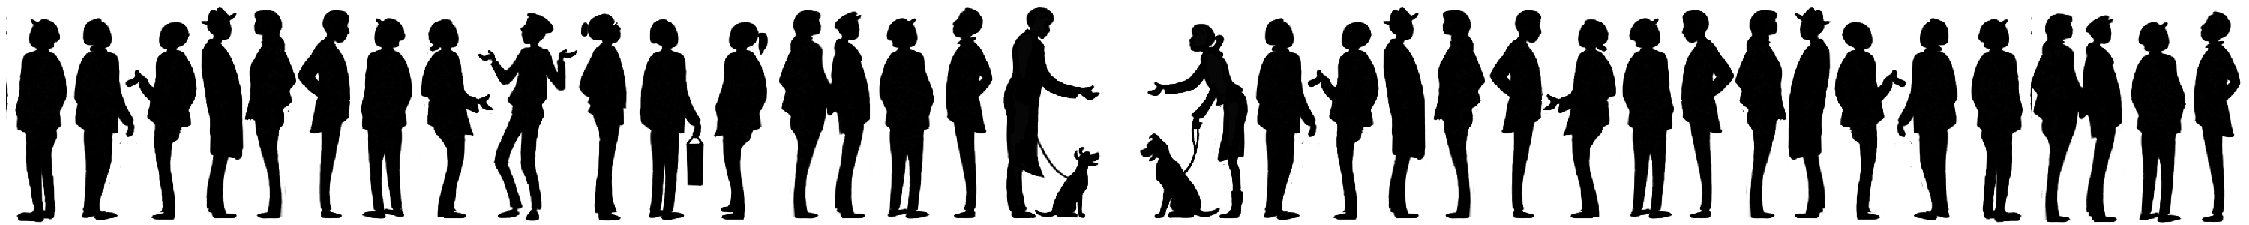 PeopleSilhouettes.png